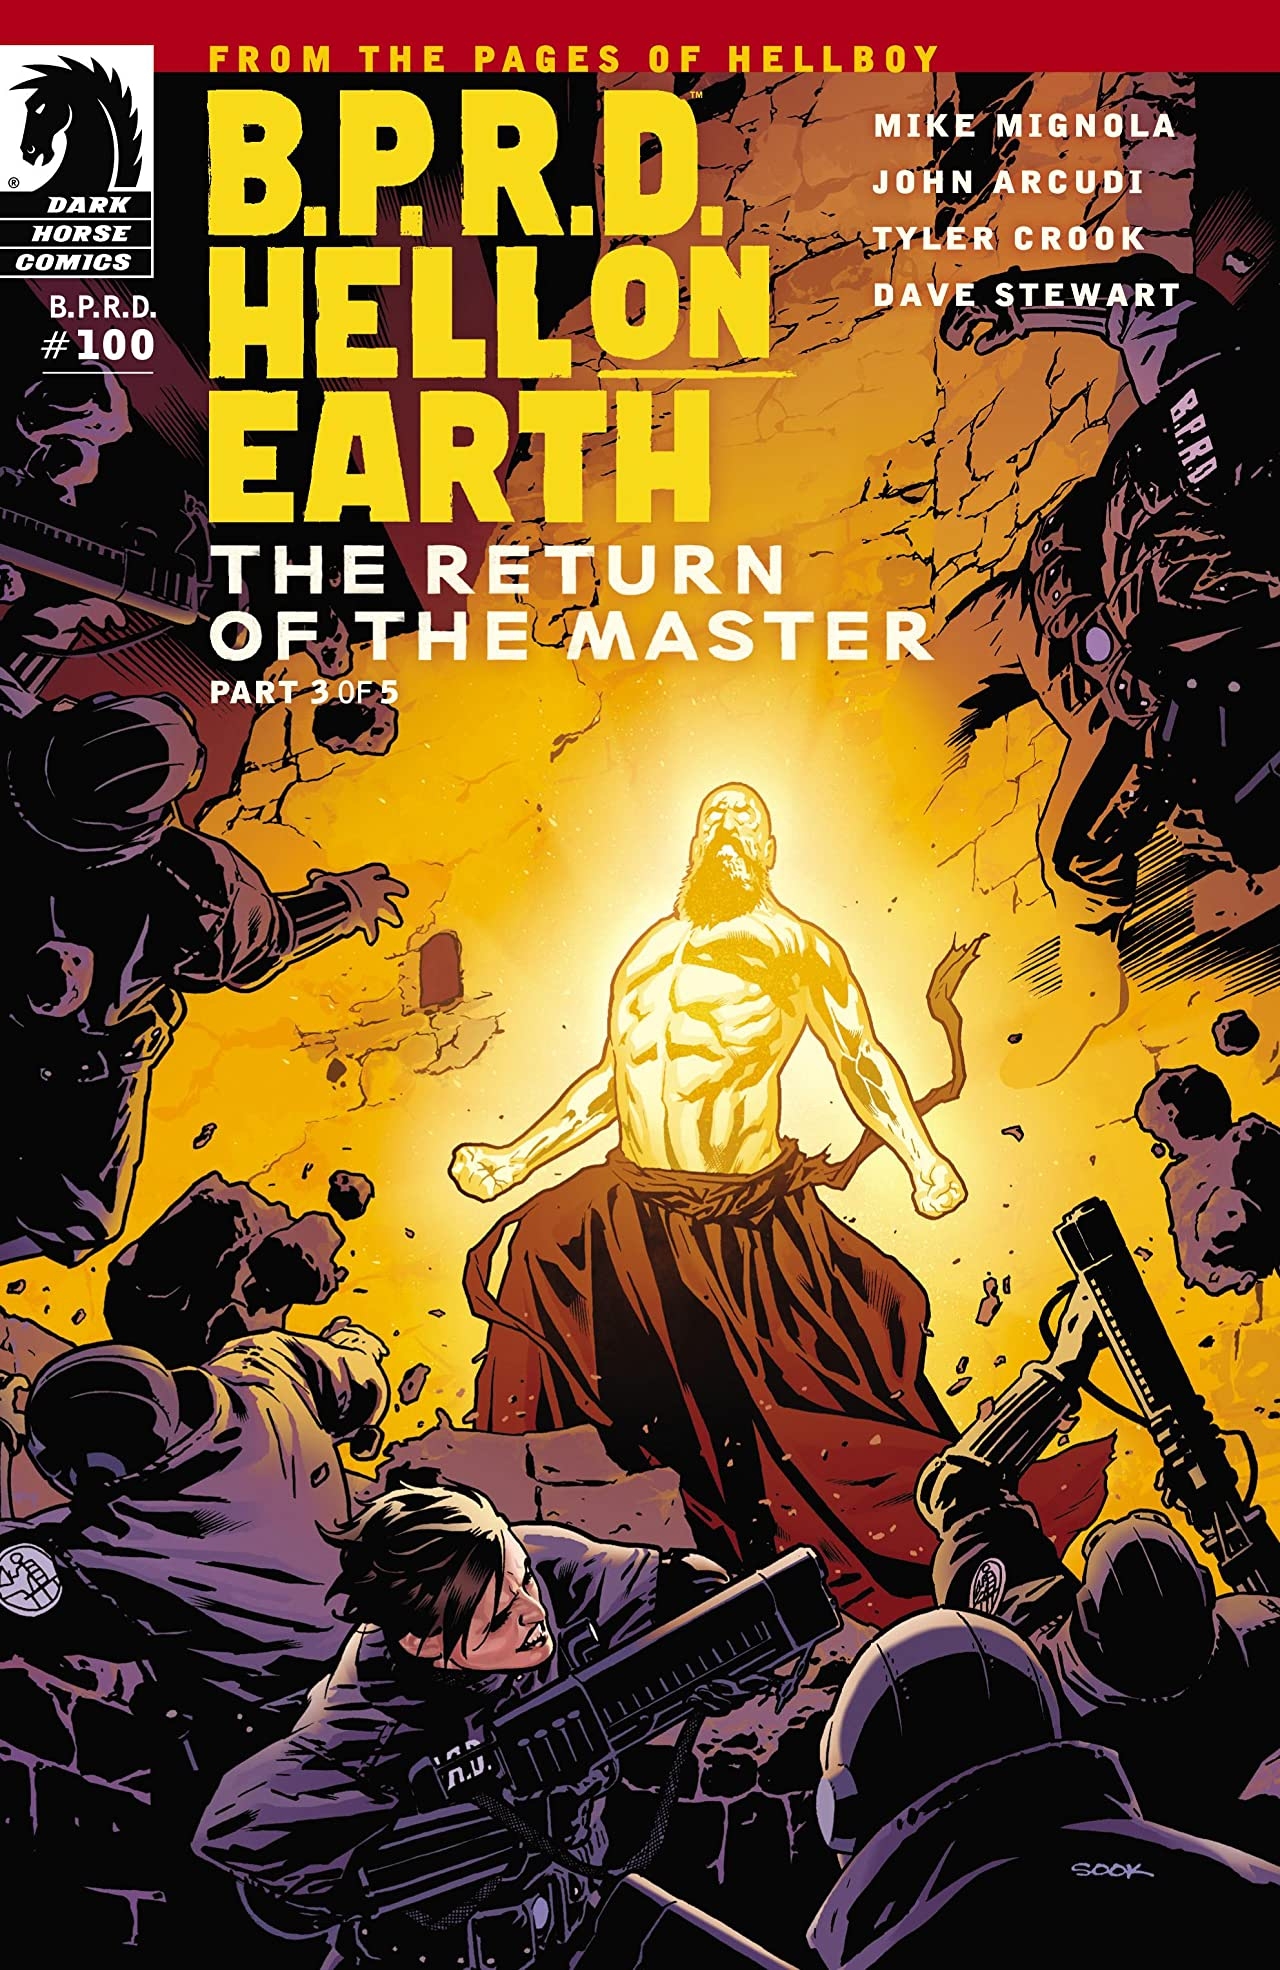 B.P.R.D.: Hell on Earth #100: The Return of the Master #3